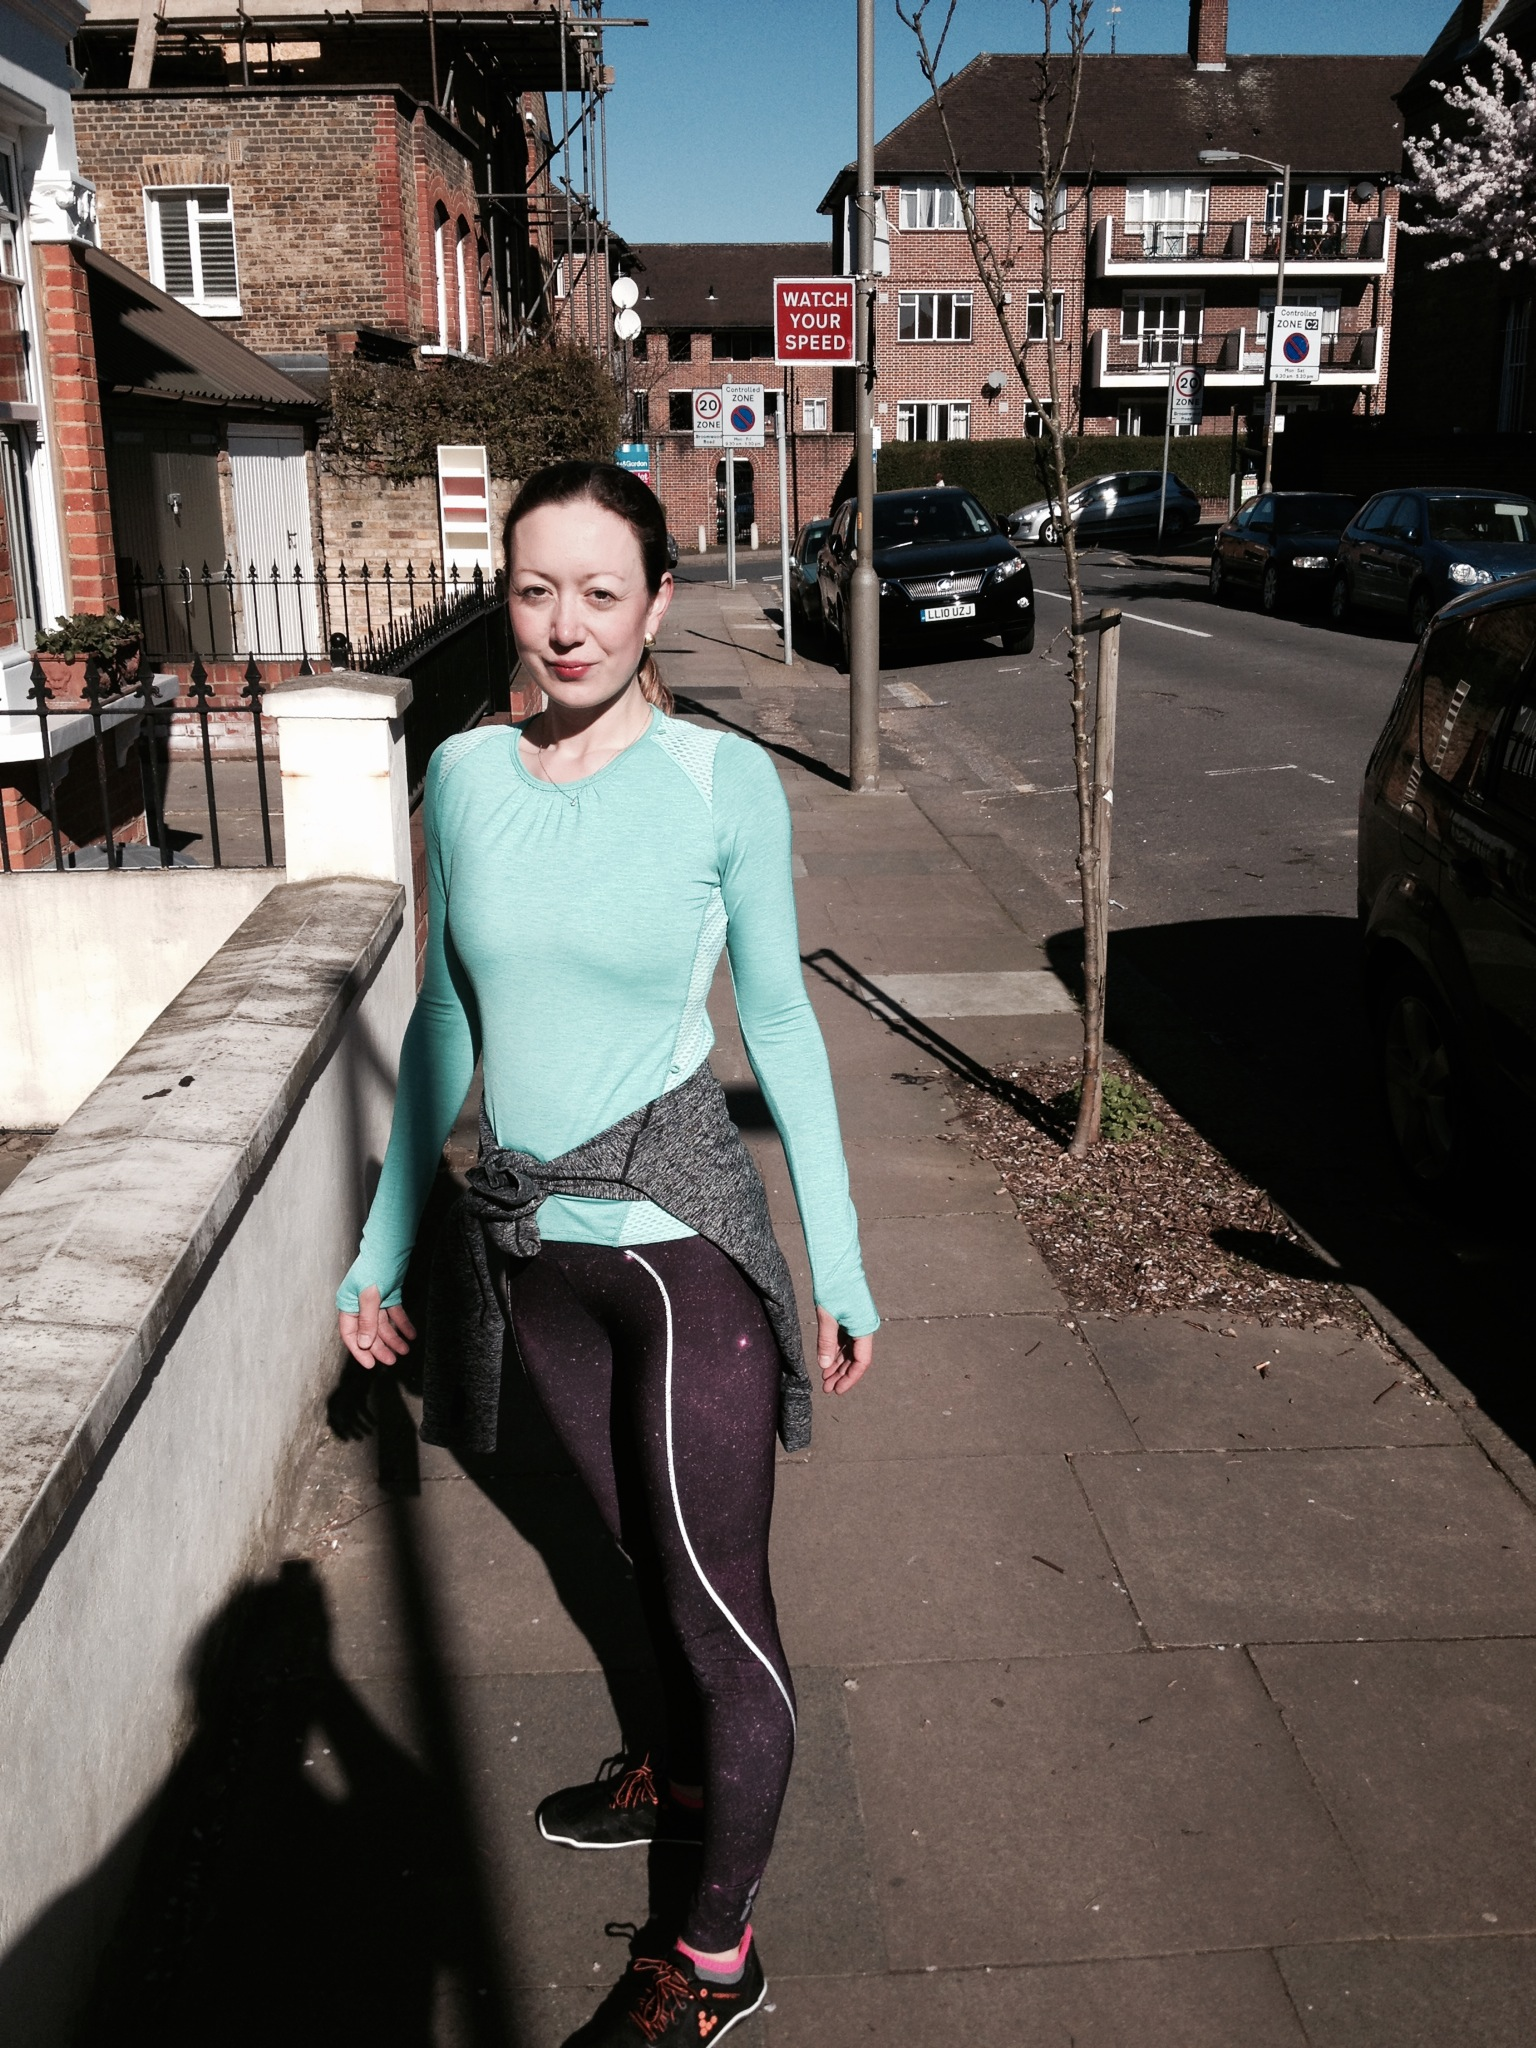 dressed like a pro in a lija runner's top for my first outdoor run